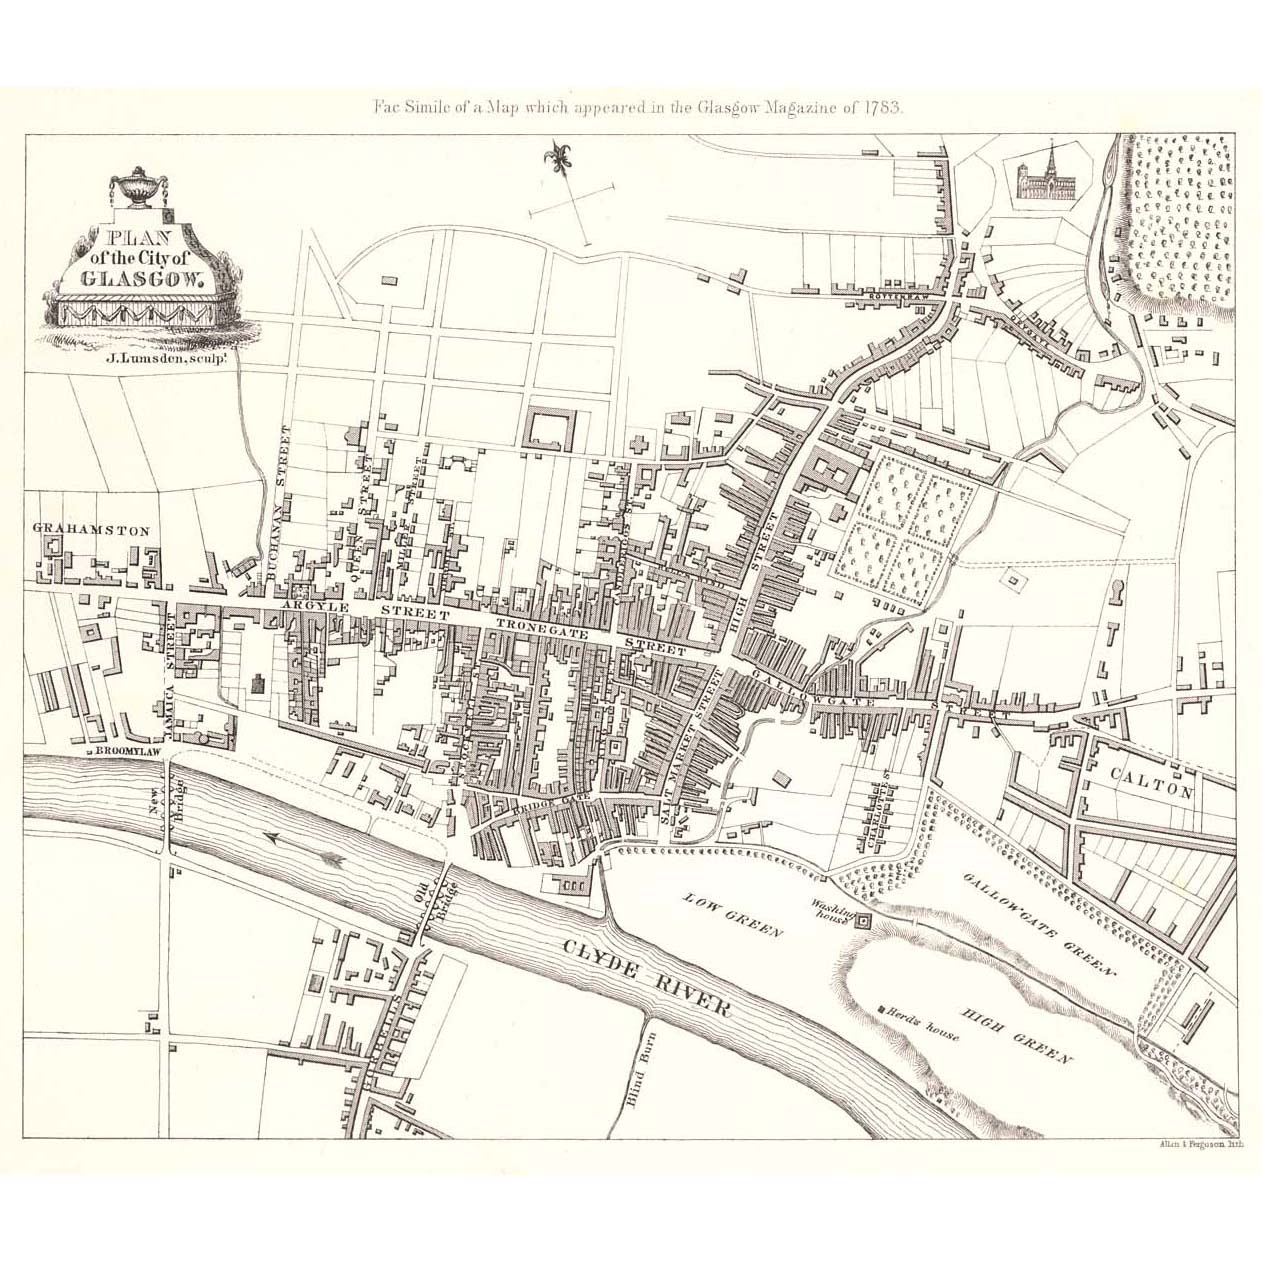 A map of Glasgow from 1783, courtesy    Britton Images   , showing Grahamston to the far west of the emerging city. You can see how unpopulated it was then, and so close to both the River Clyde and the eventual site of Glasgow Central.